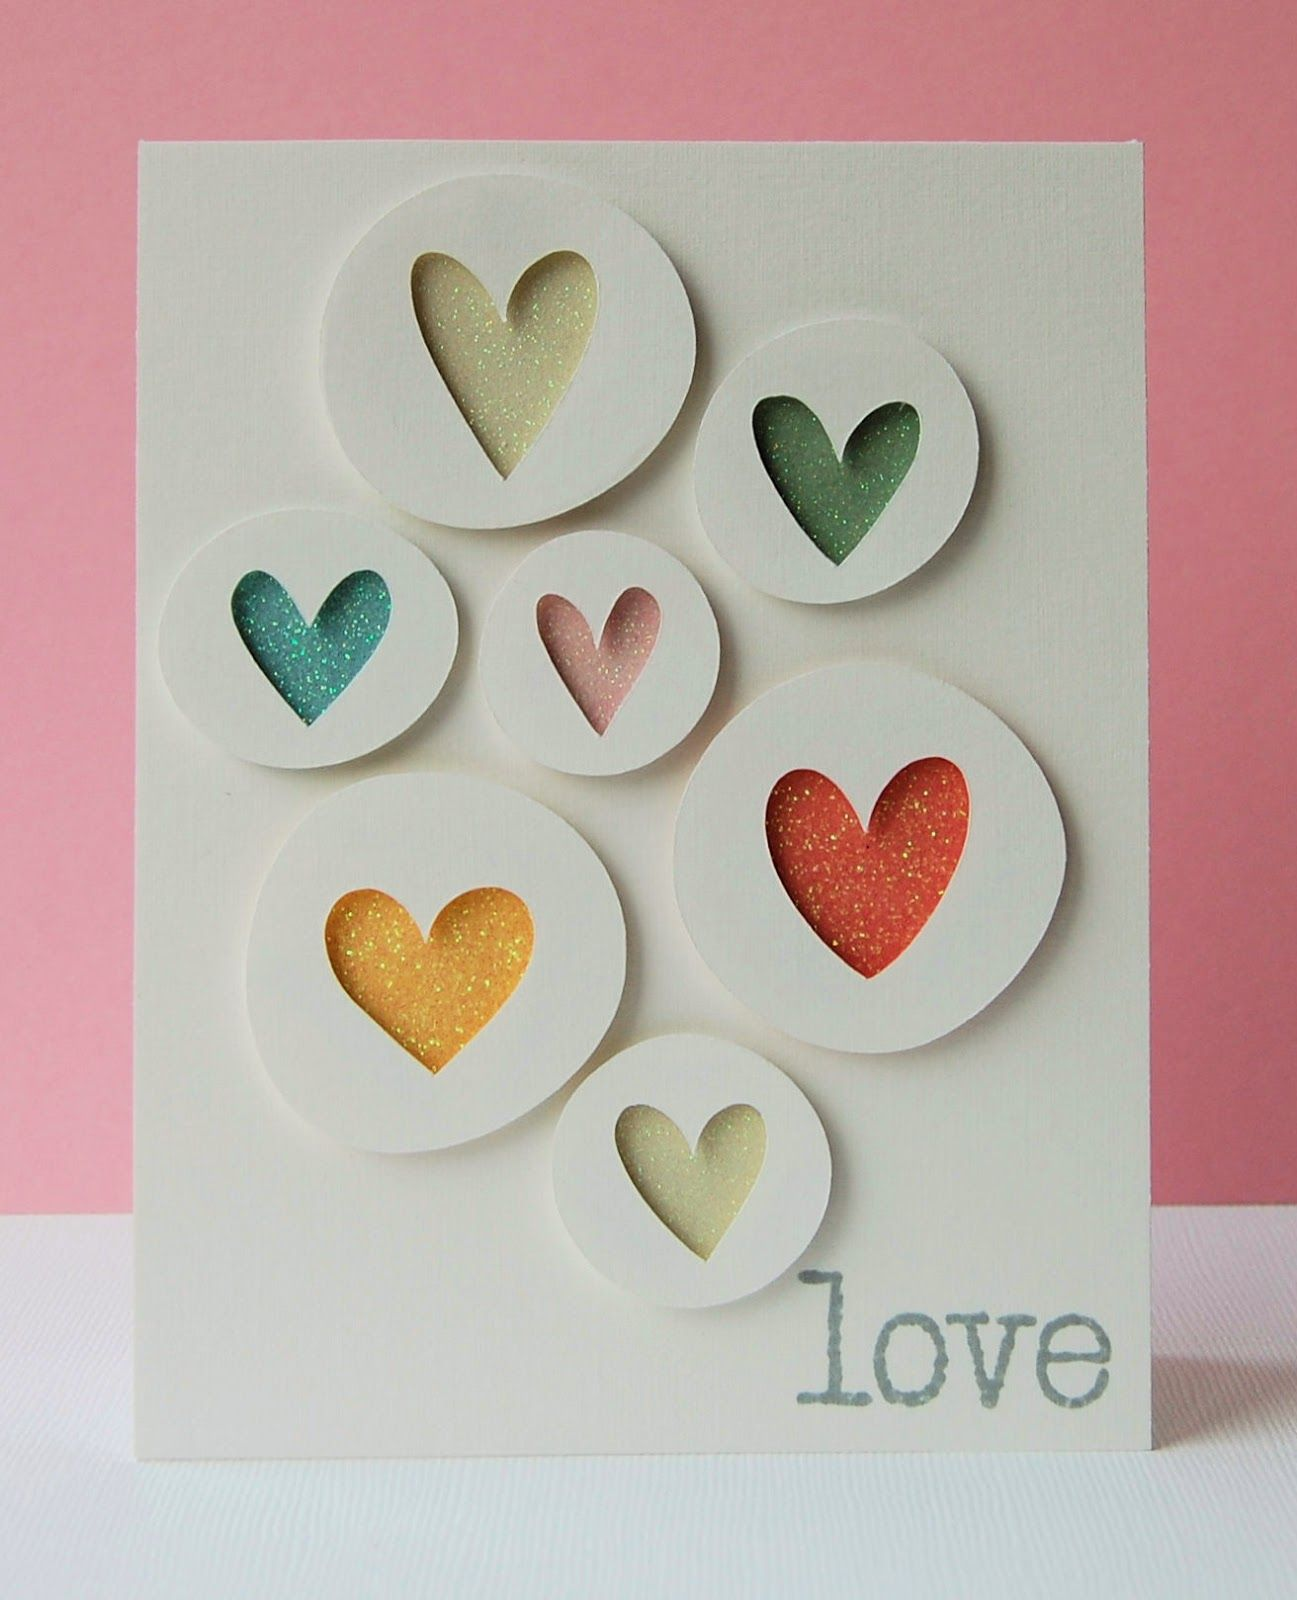 Paper and ribbons keeping it simple crafts diys pinterest love card anniversaryvalentine negative space hearts punched from circles and backed in bright colors fab look m4hsunfo